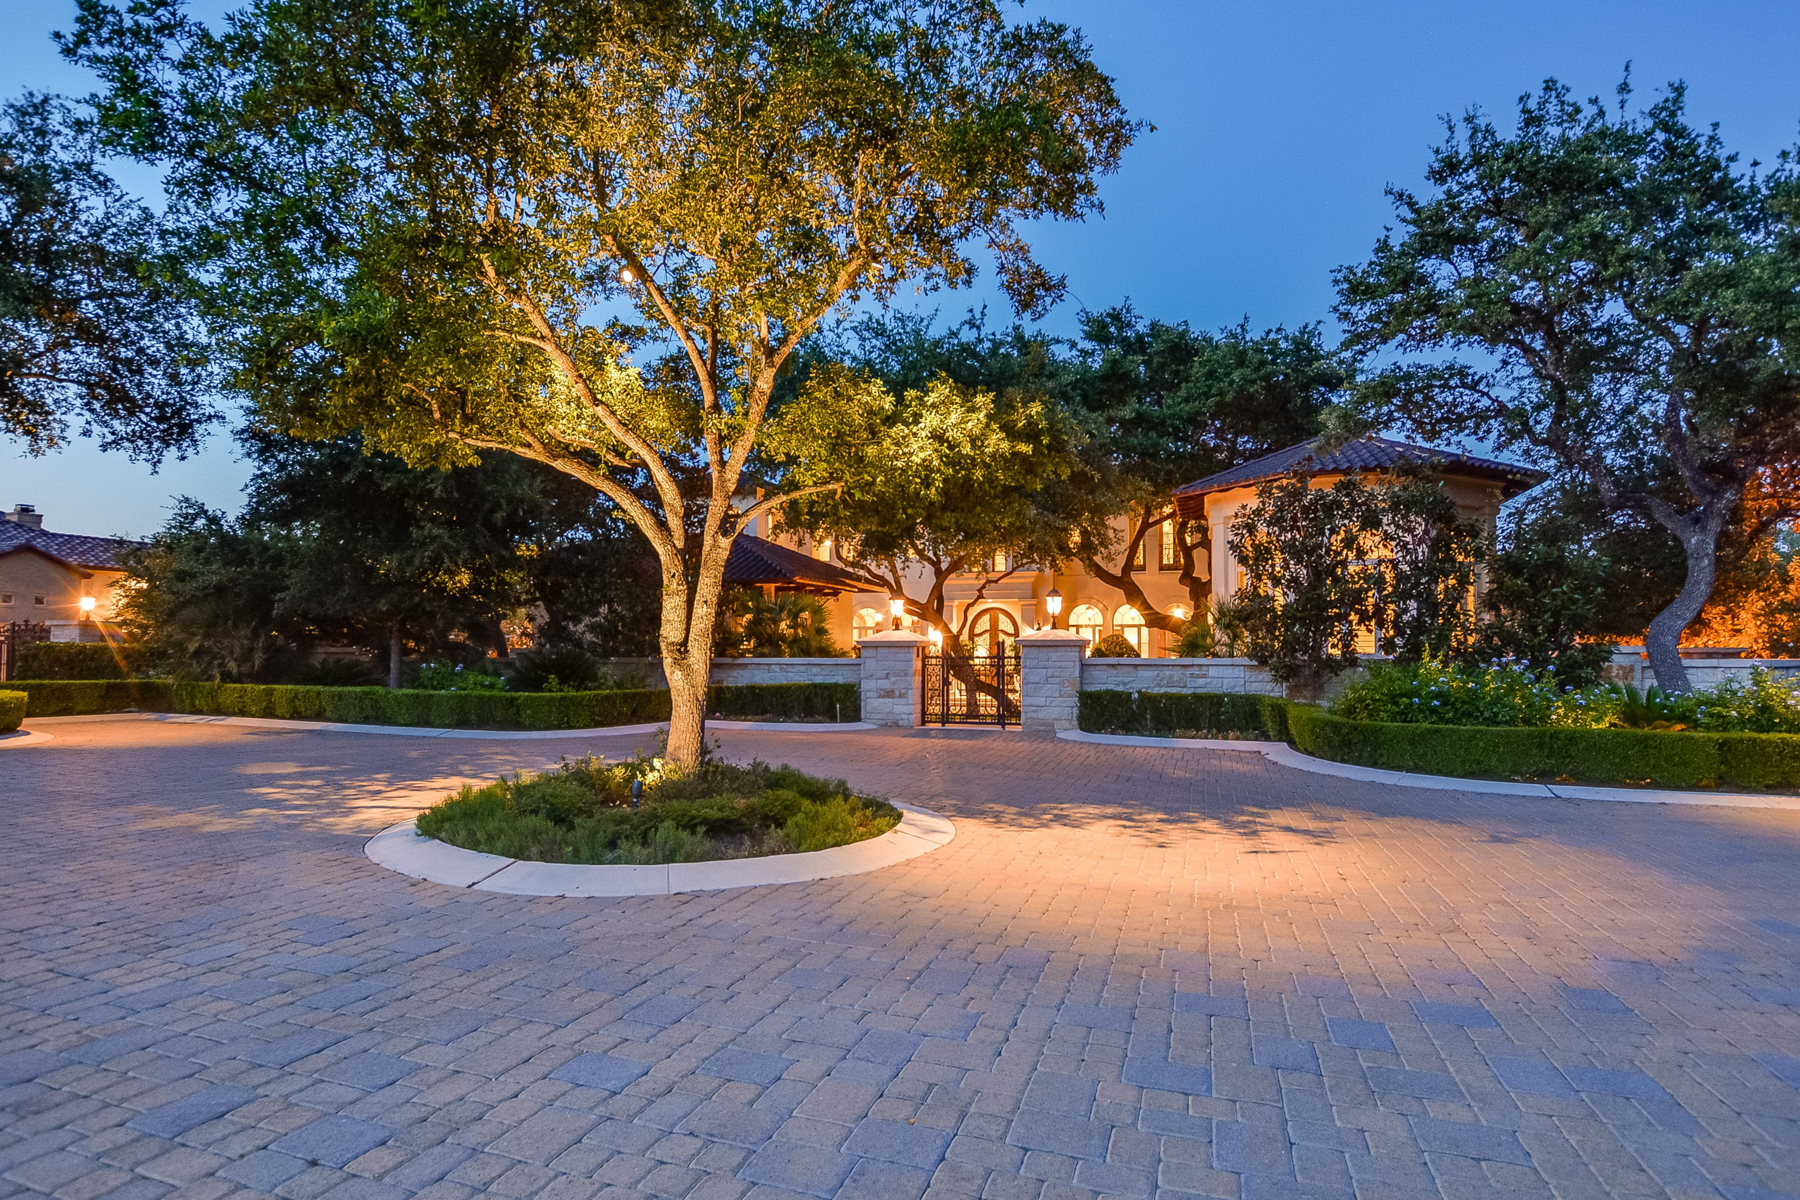 Single Family Home for Sale at Breathtaking Masterpiece in Huntington 238 Winding Ln San Antonio, Texas 78231 United States